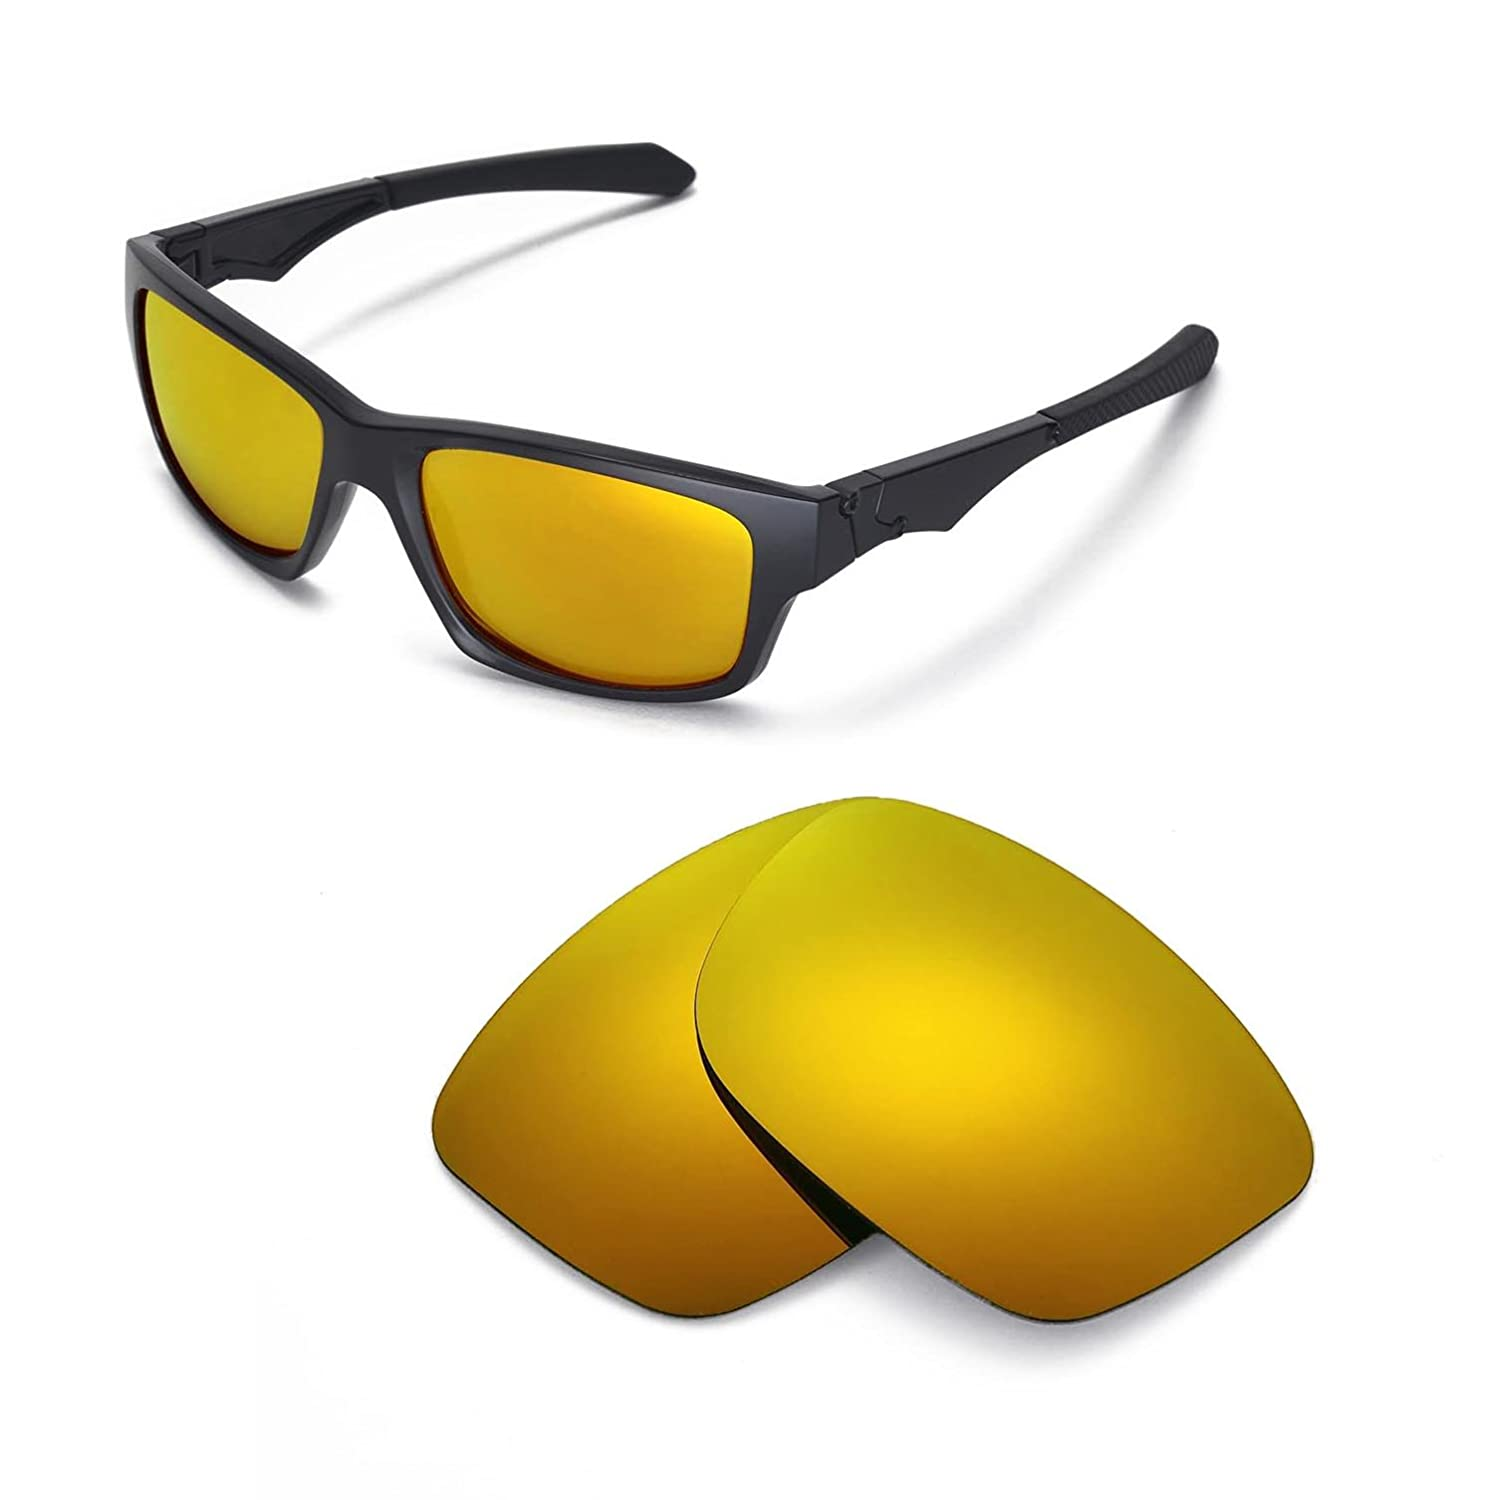 fd39f3209f875c Amazon.com   Walleva Replacement Lenses for Oakley Jupiter Squared  Sunglasses - Multiple Options Available (24K - Polarized)   Sports    Outdoors